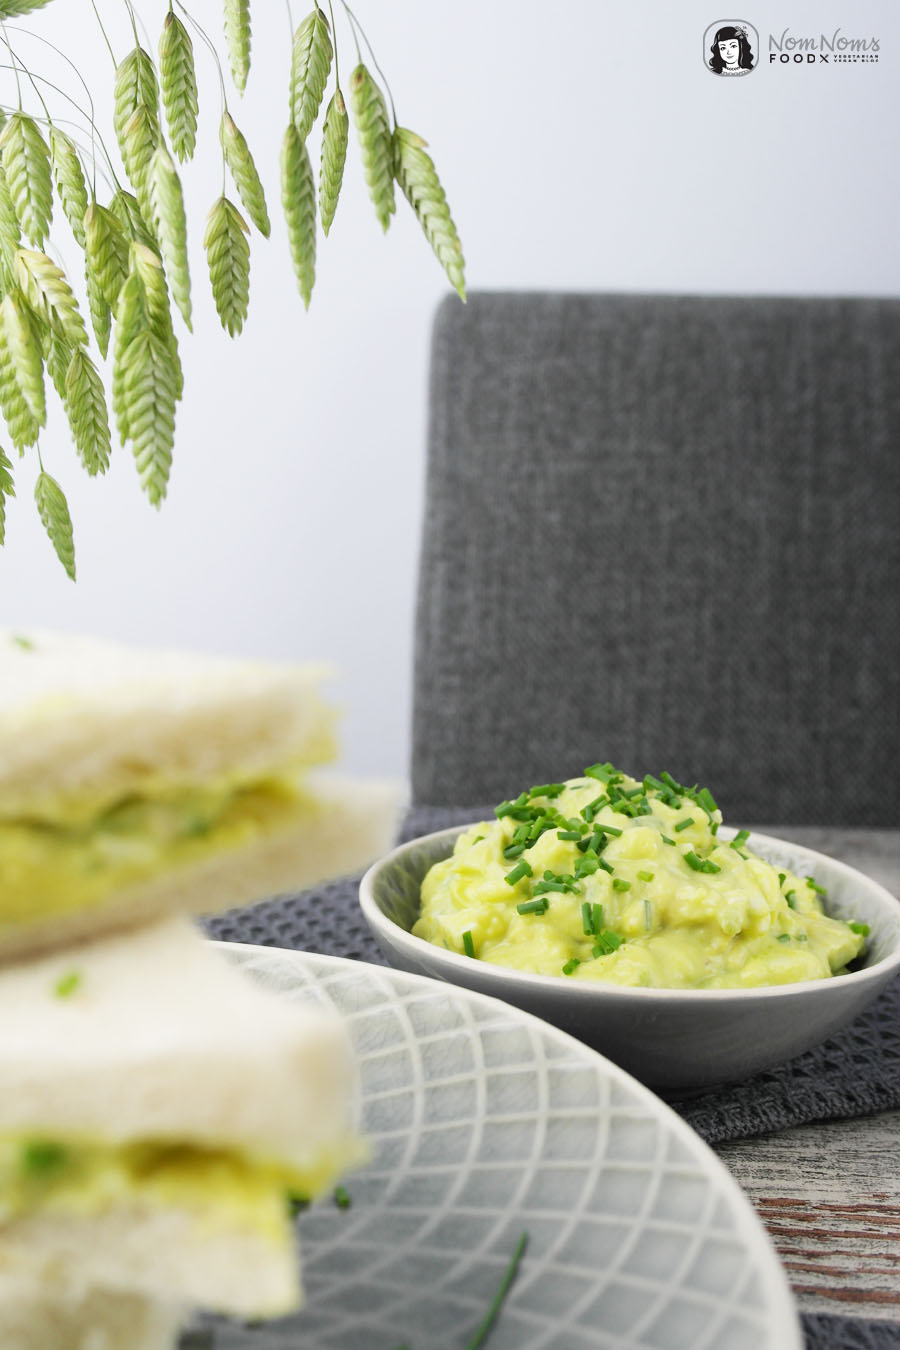 Avocado-Curry-Eiersalat Sandwich